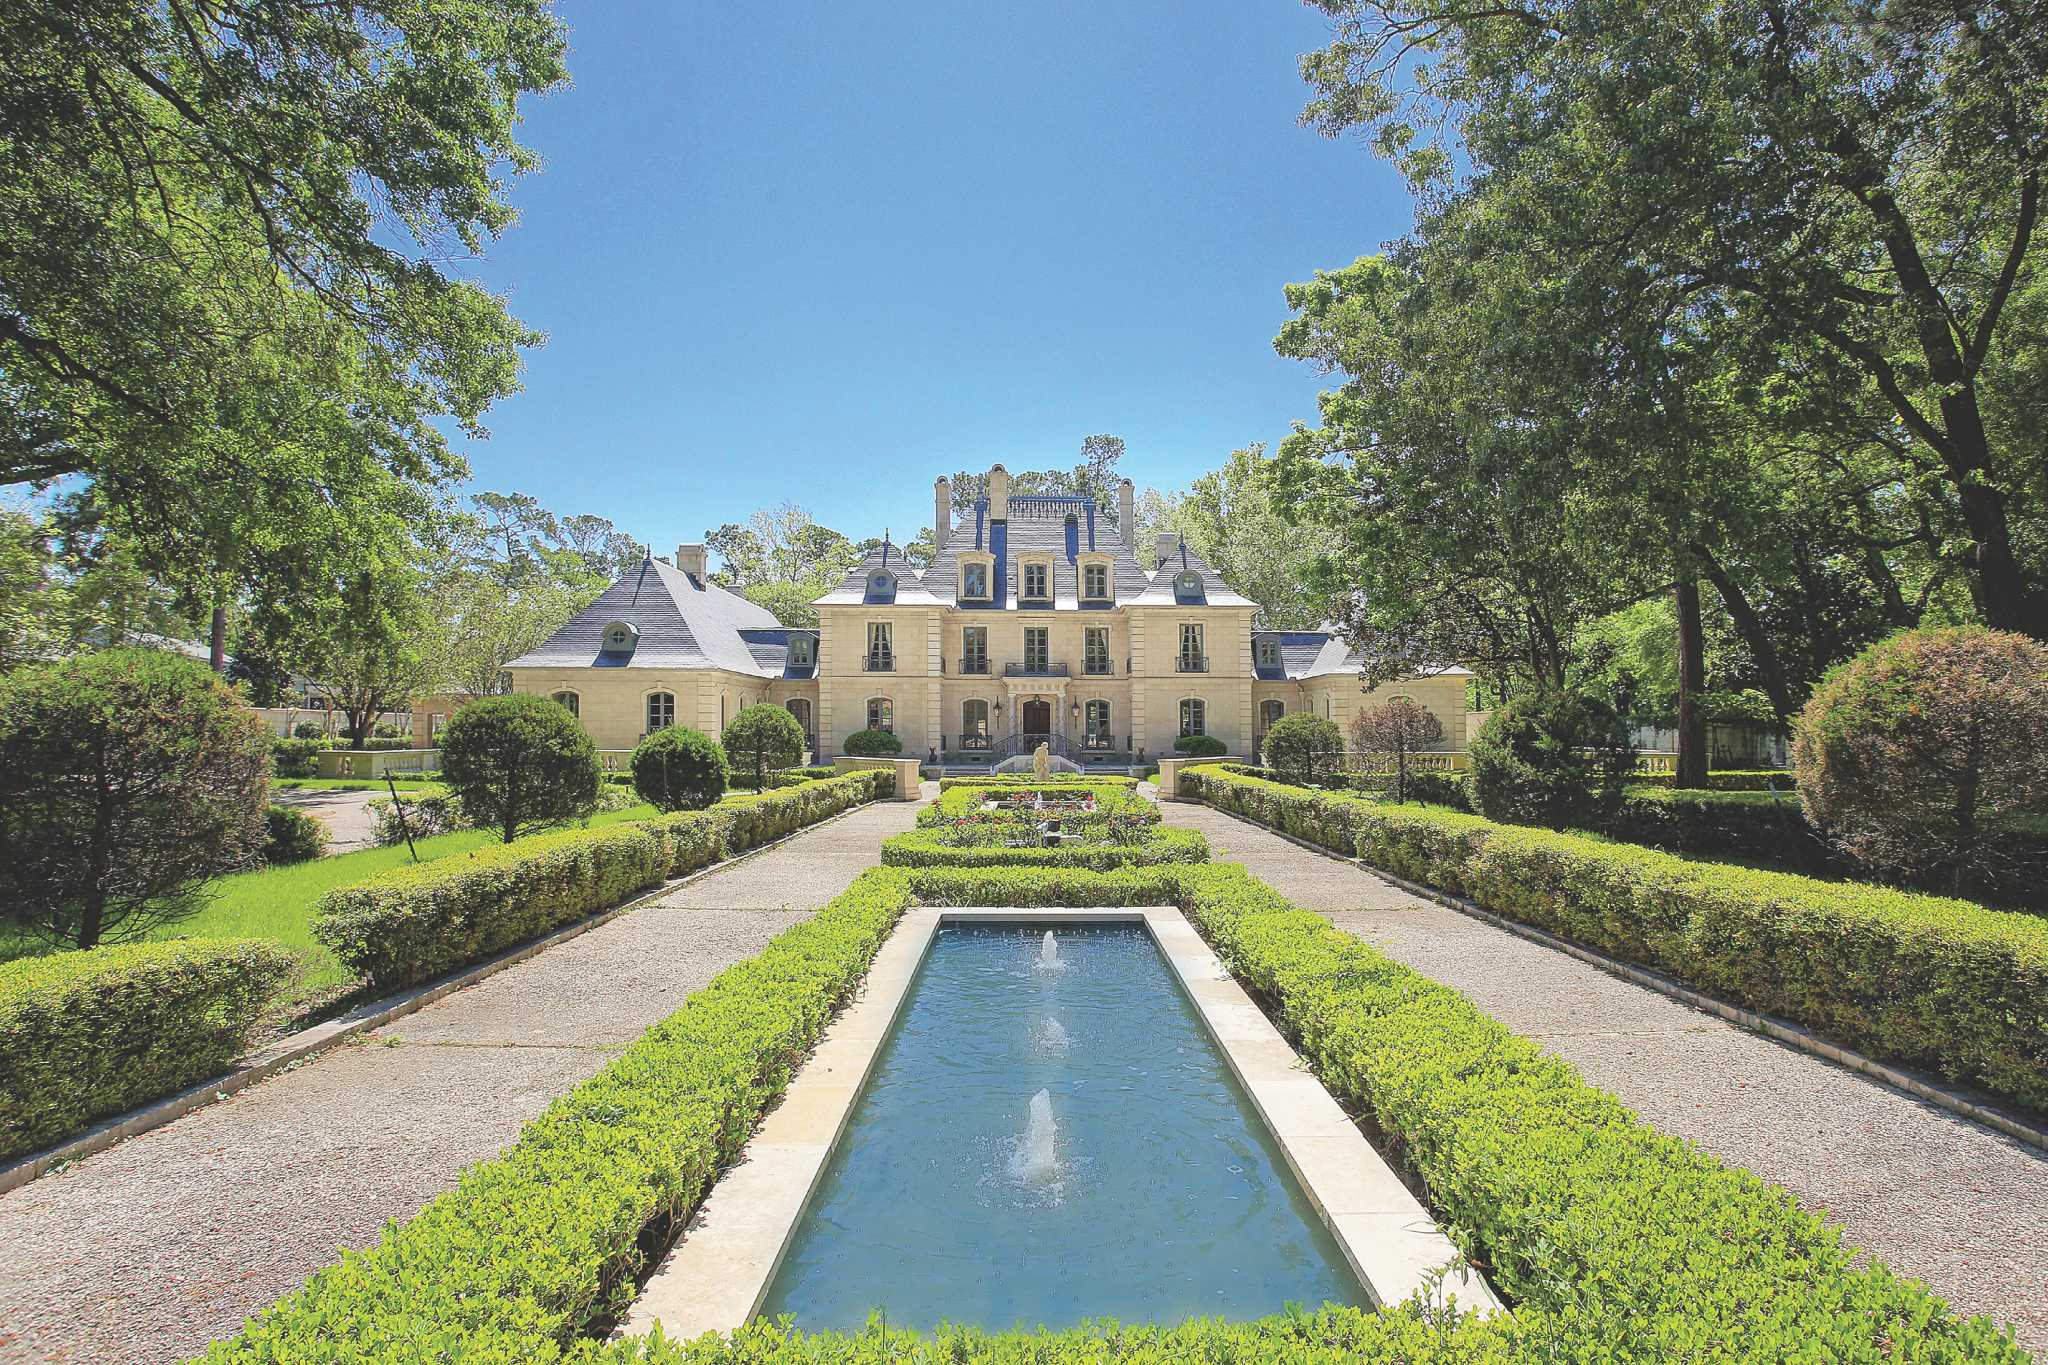 Prime property french chateau style home 2 plus acres has for French chateau style homes for sale